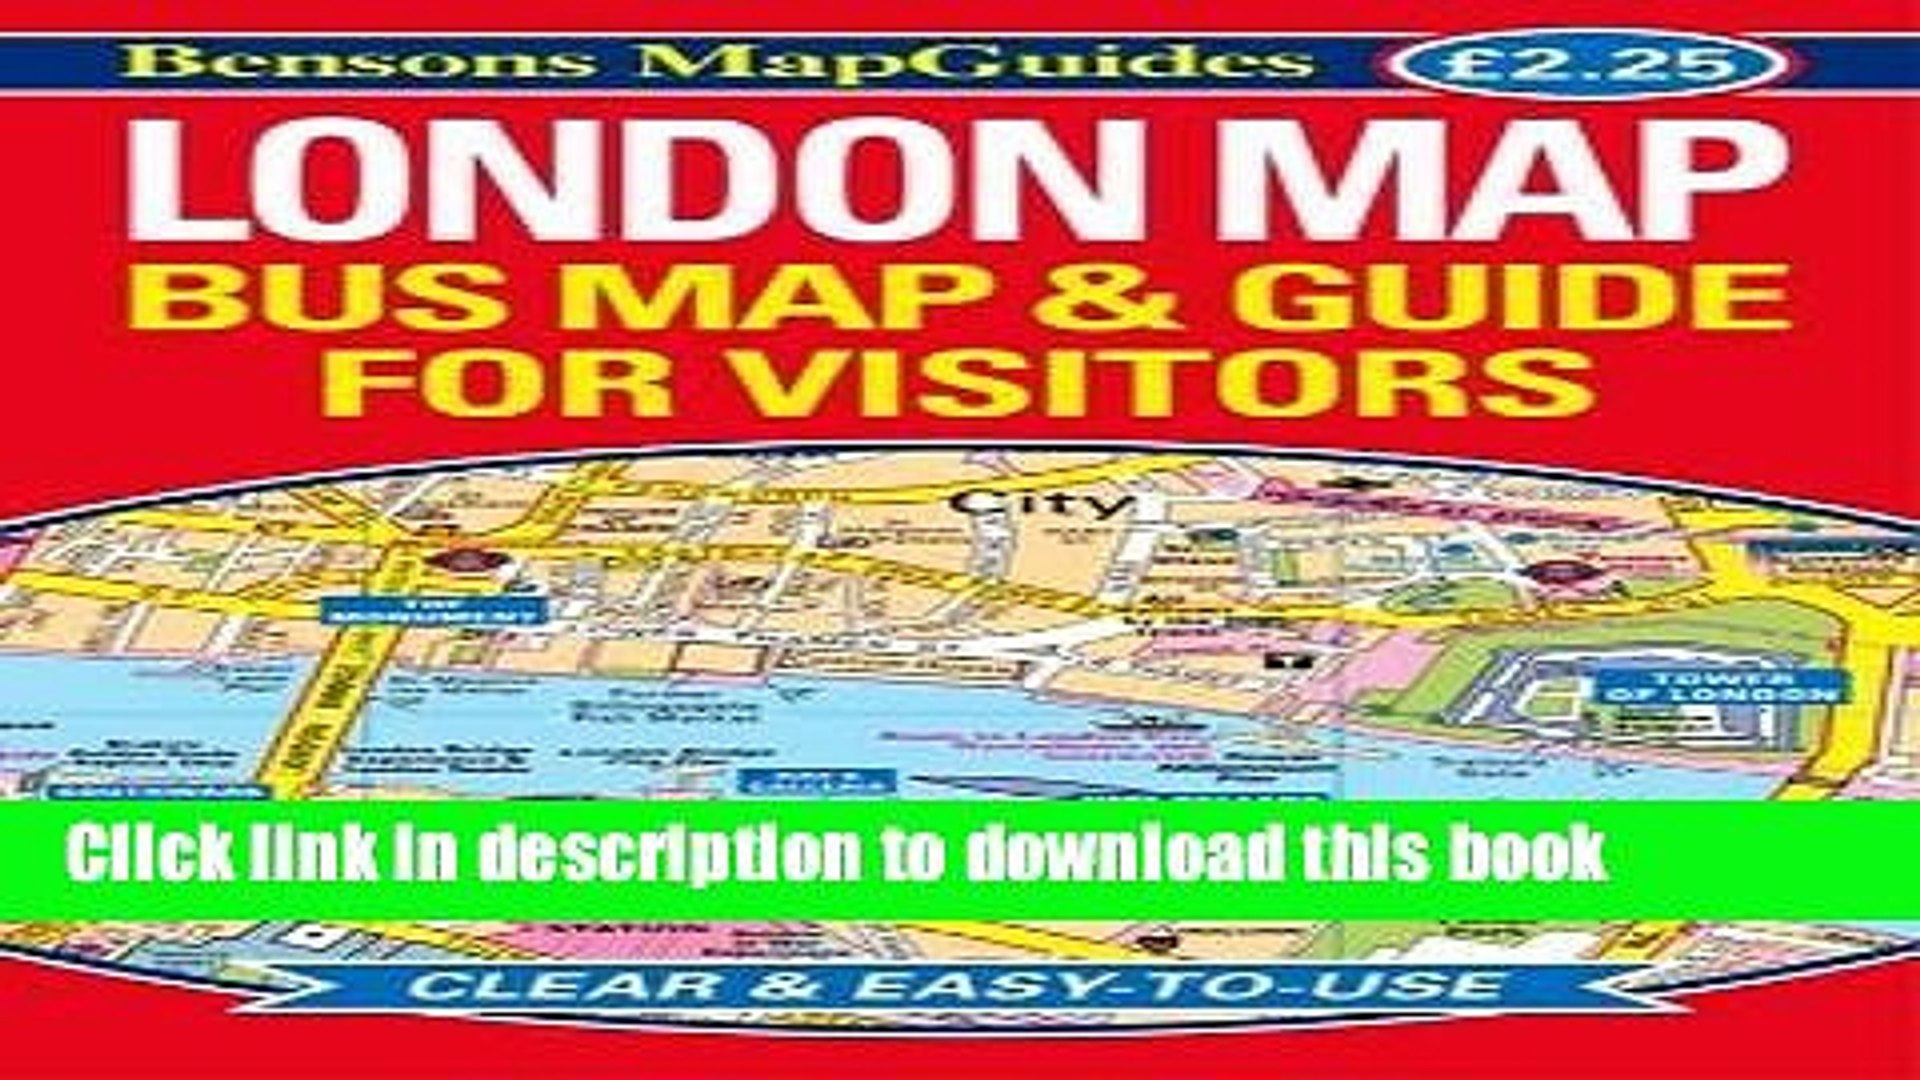 London Map Guide.Books London Map Bus Map And Guide For Visitors Free Online